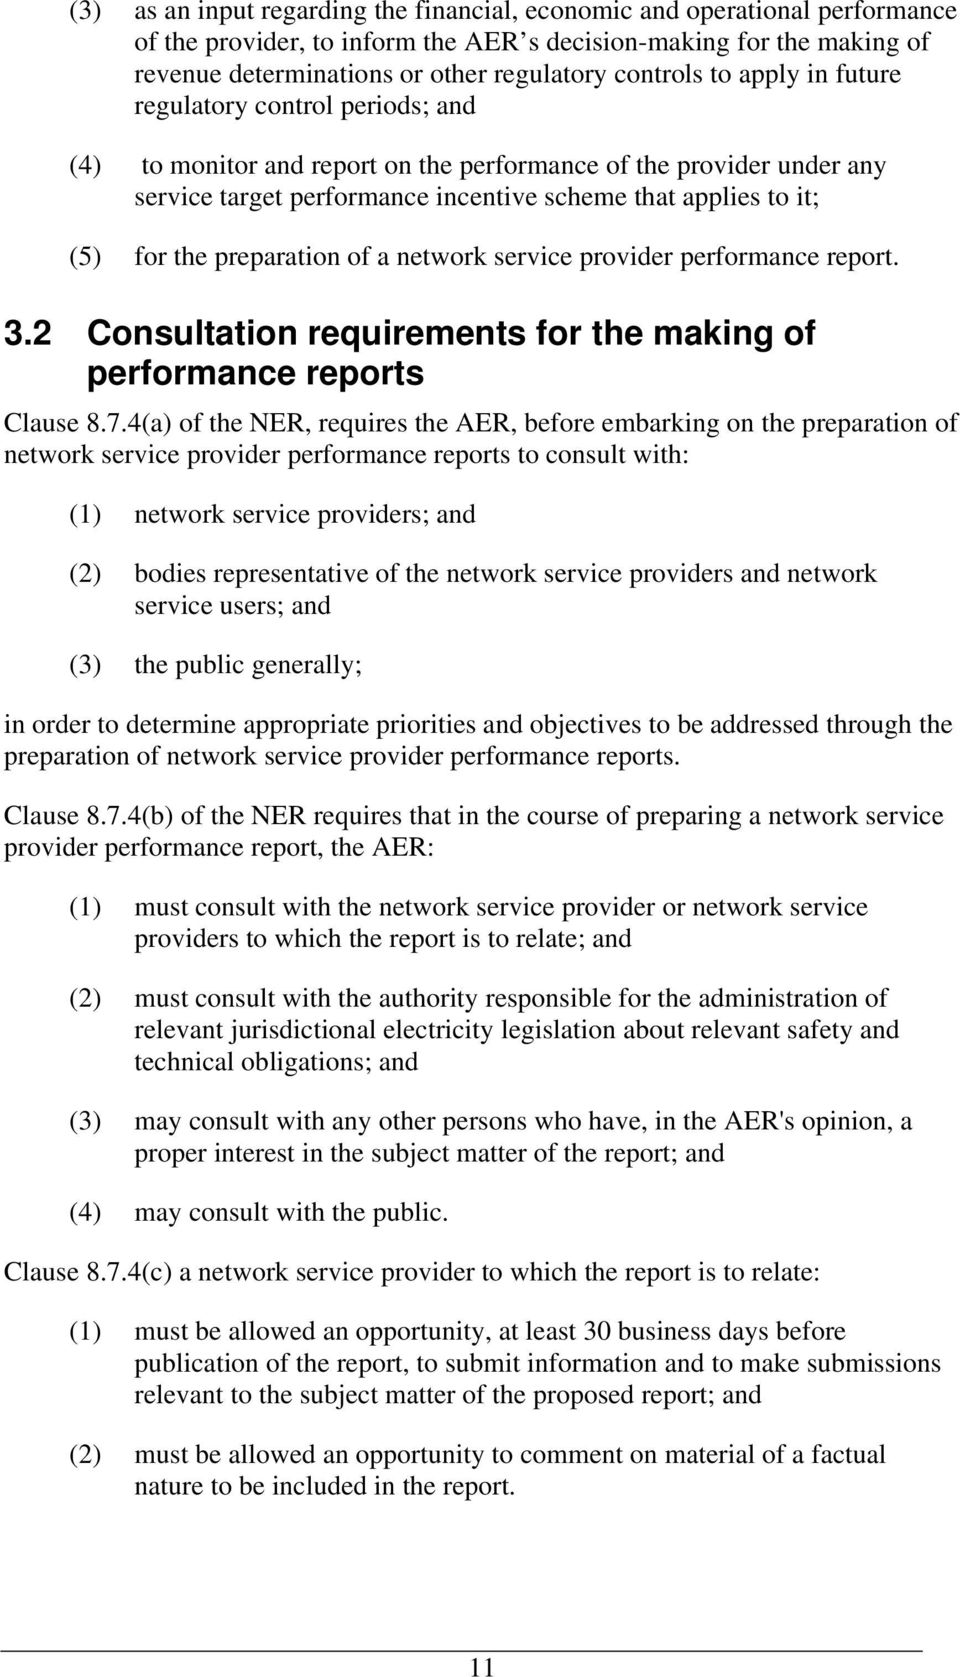 for the preparation of a network service provider performance report. 3.2 Consultation requirements for the making of performance reports Clause 8.7.